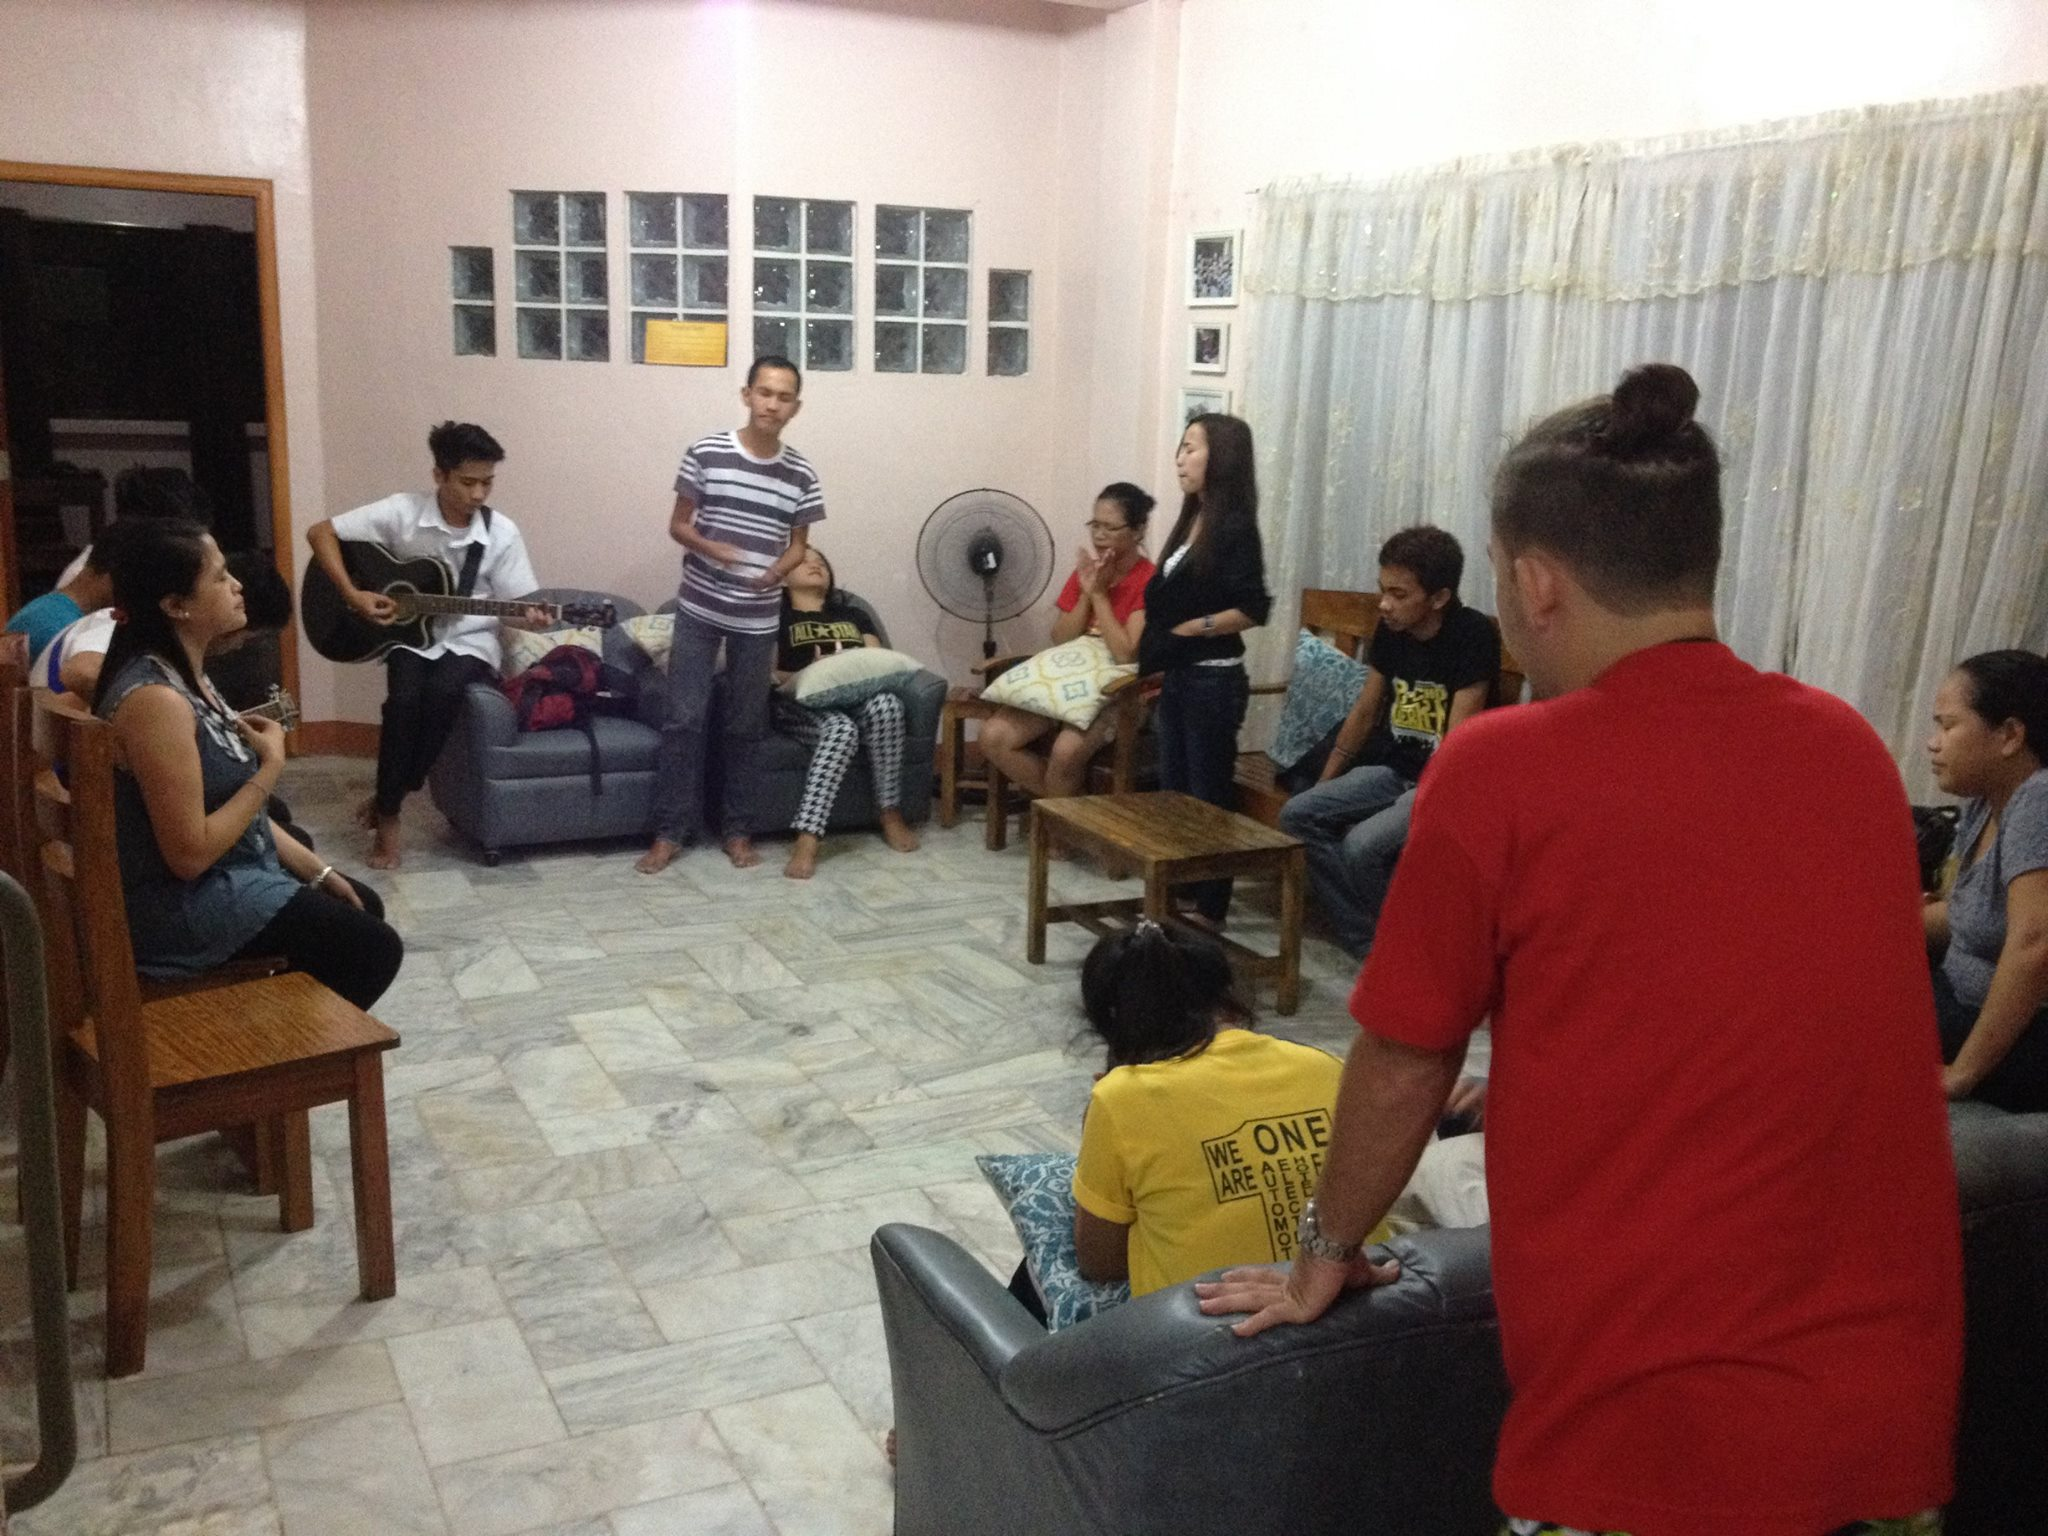 We love and look forward to more moments like this of worship and bible study gatherings with young adults in the area.